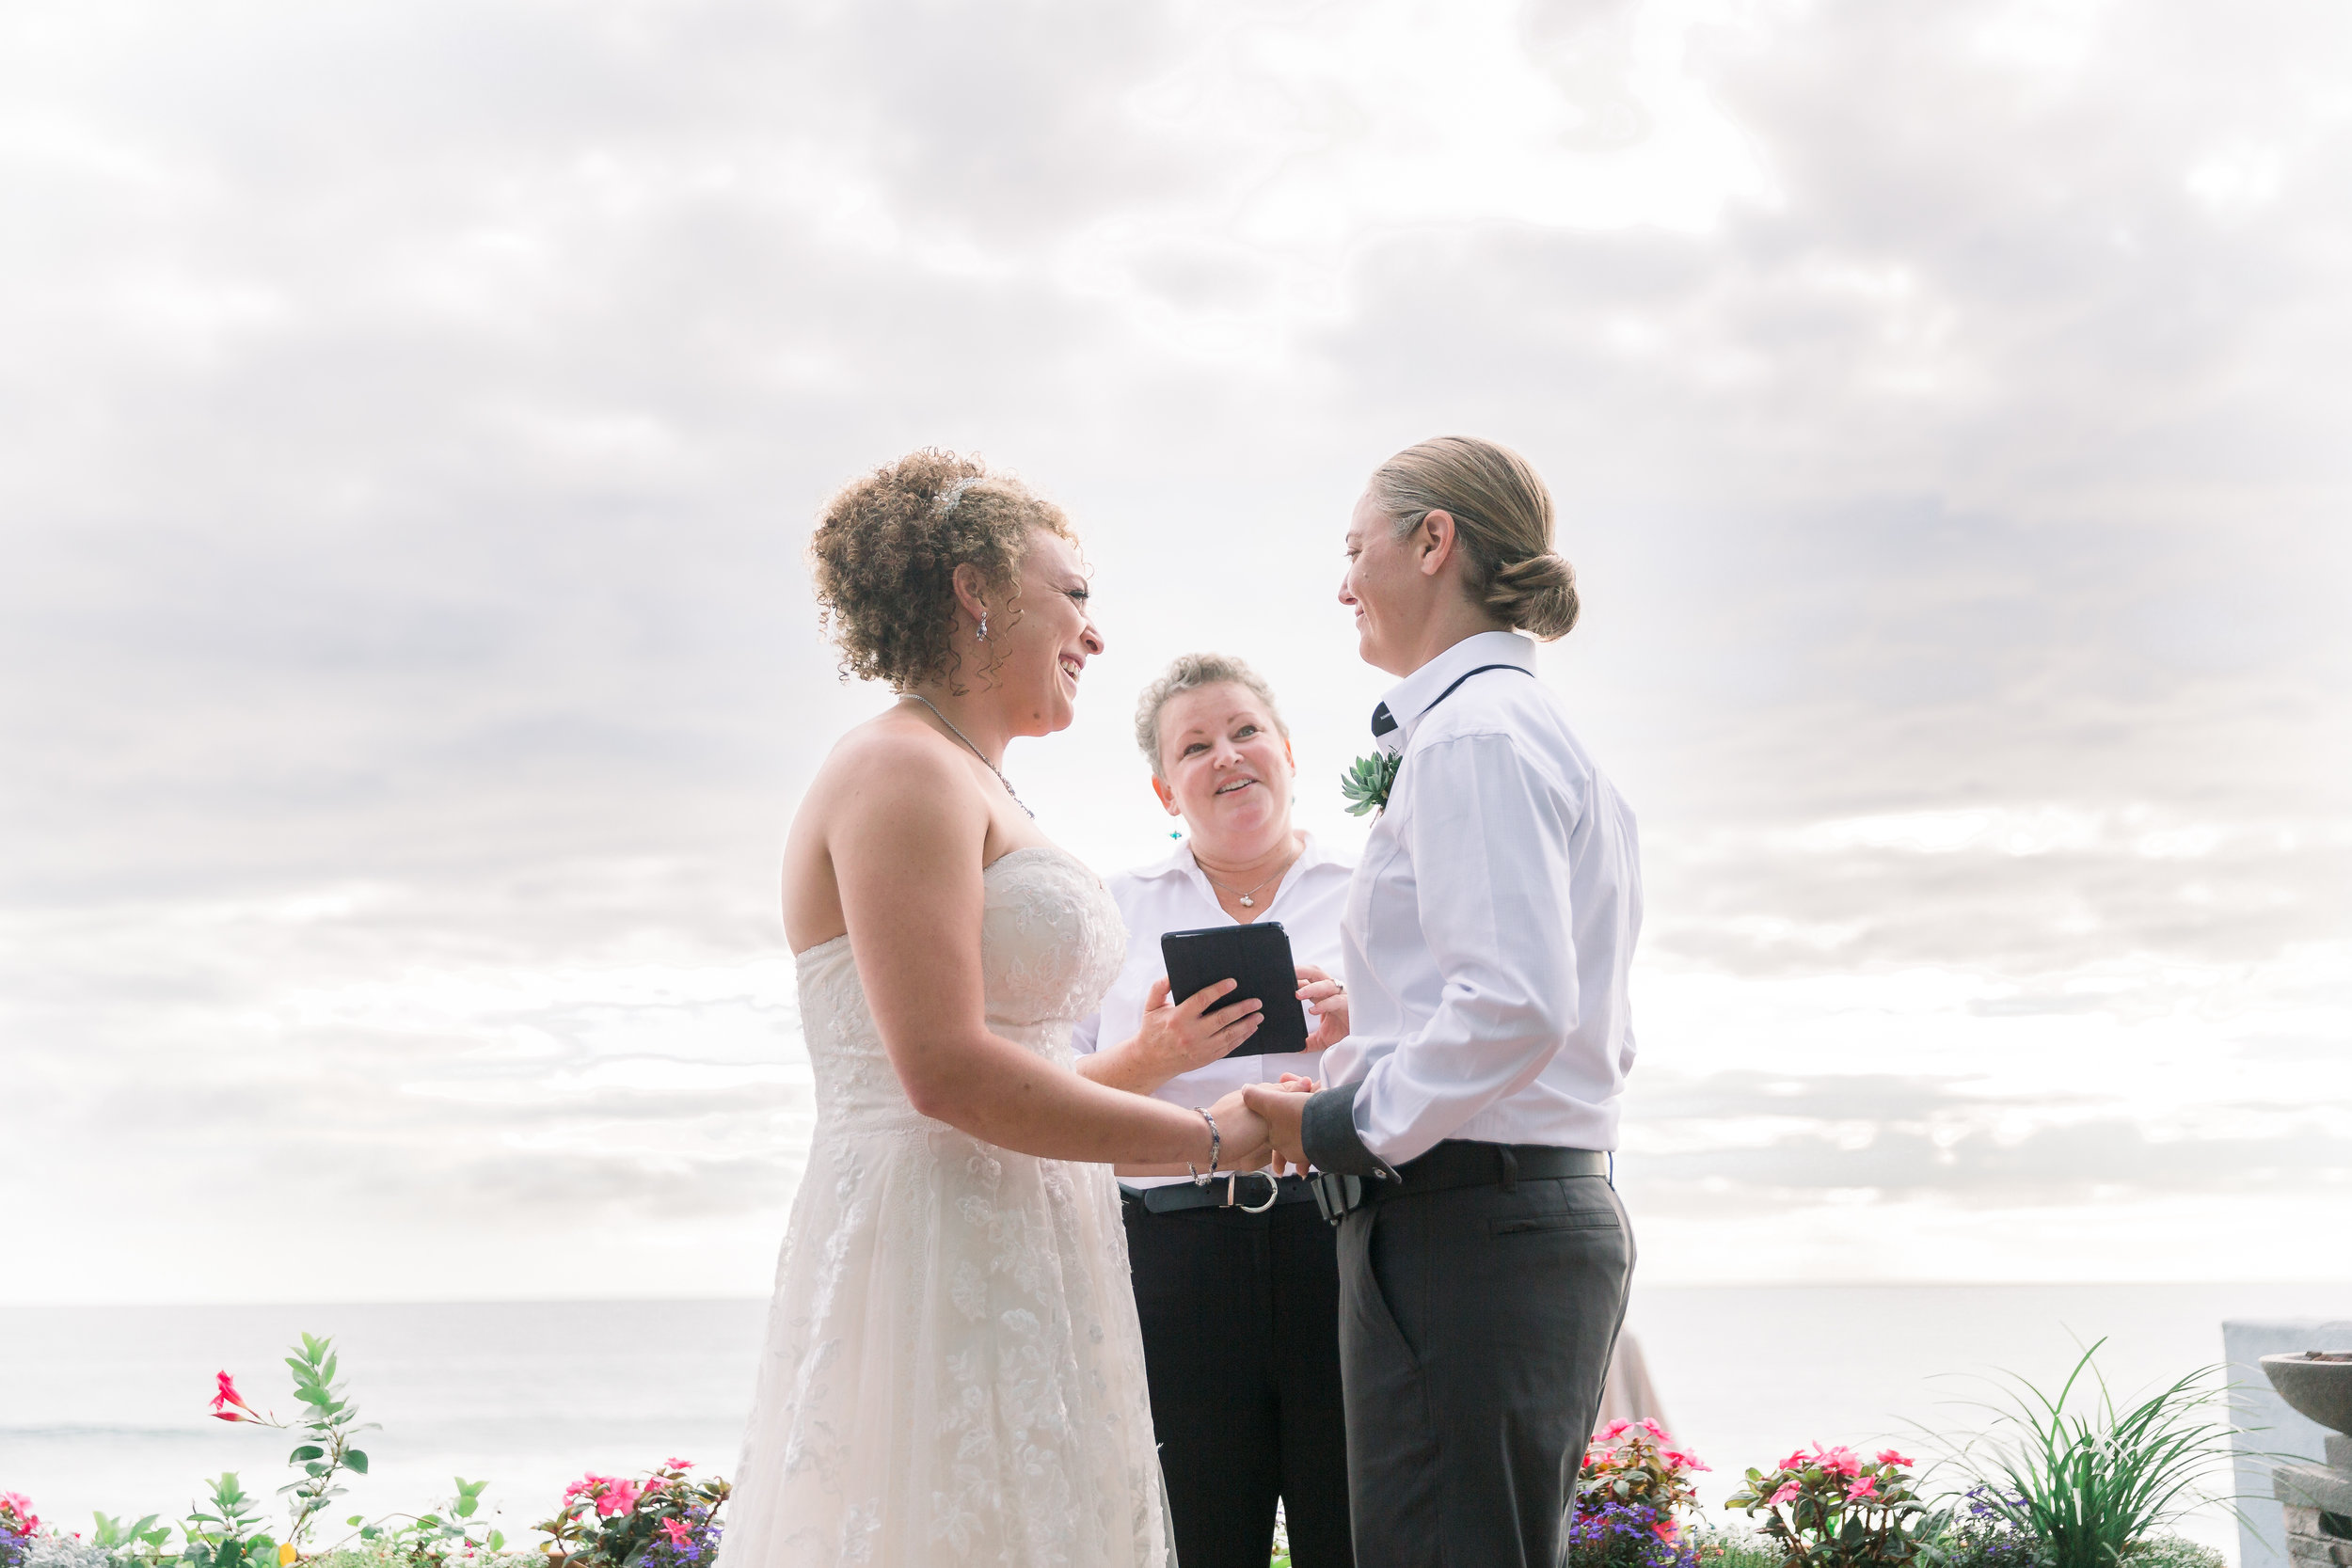 Image by    Vallentyne Photography   , Shenee + Lainey, private residence in Oceanside